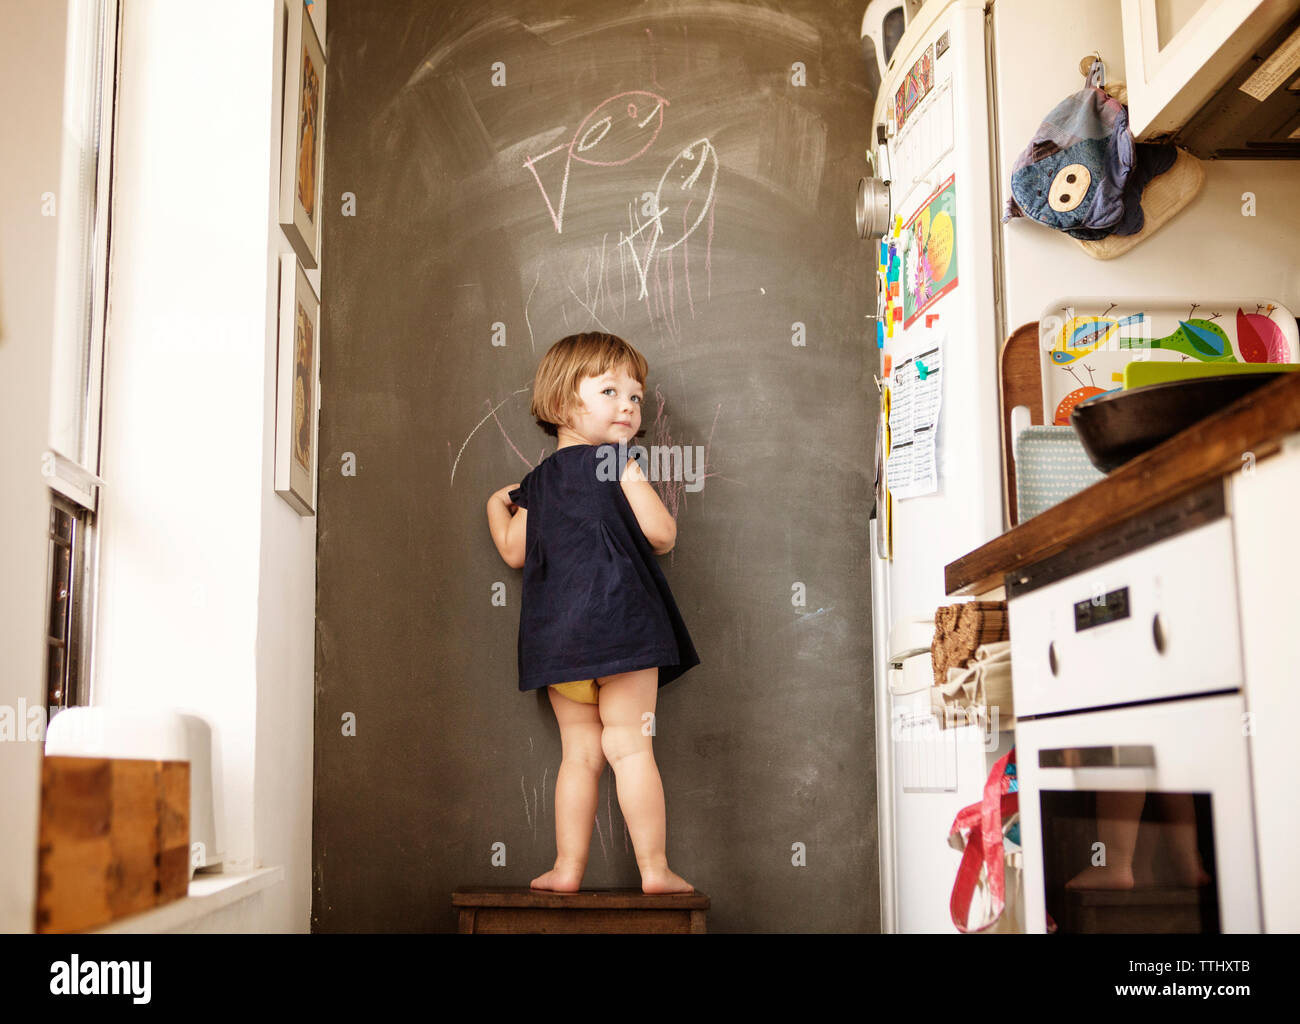 Rear view of girl writing on wall while standing on stool at home - Stock Image